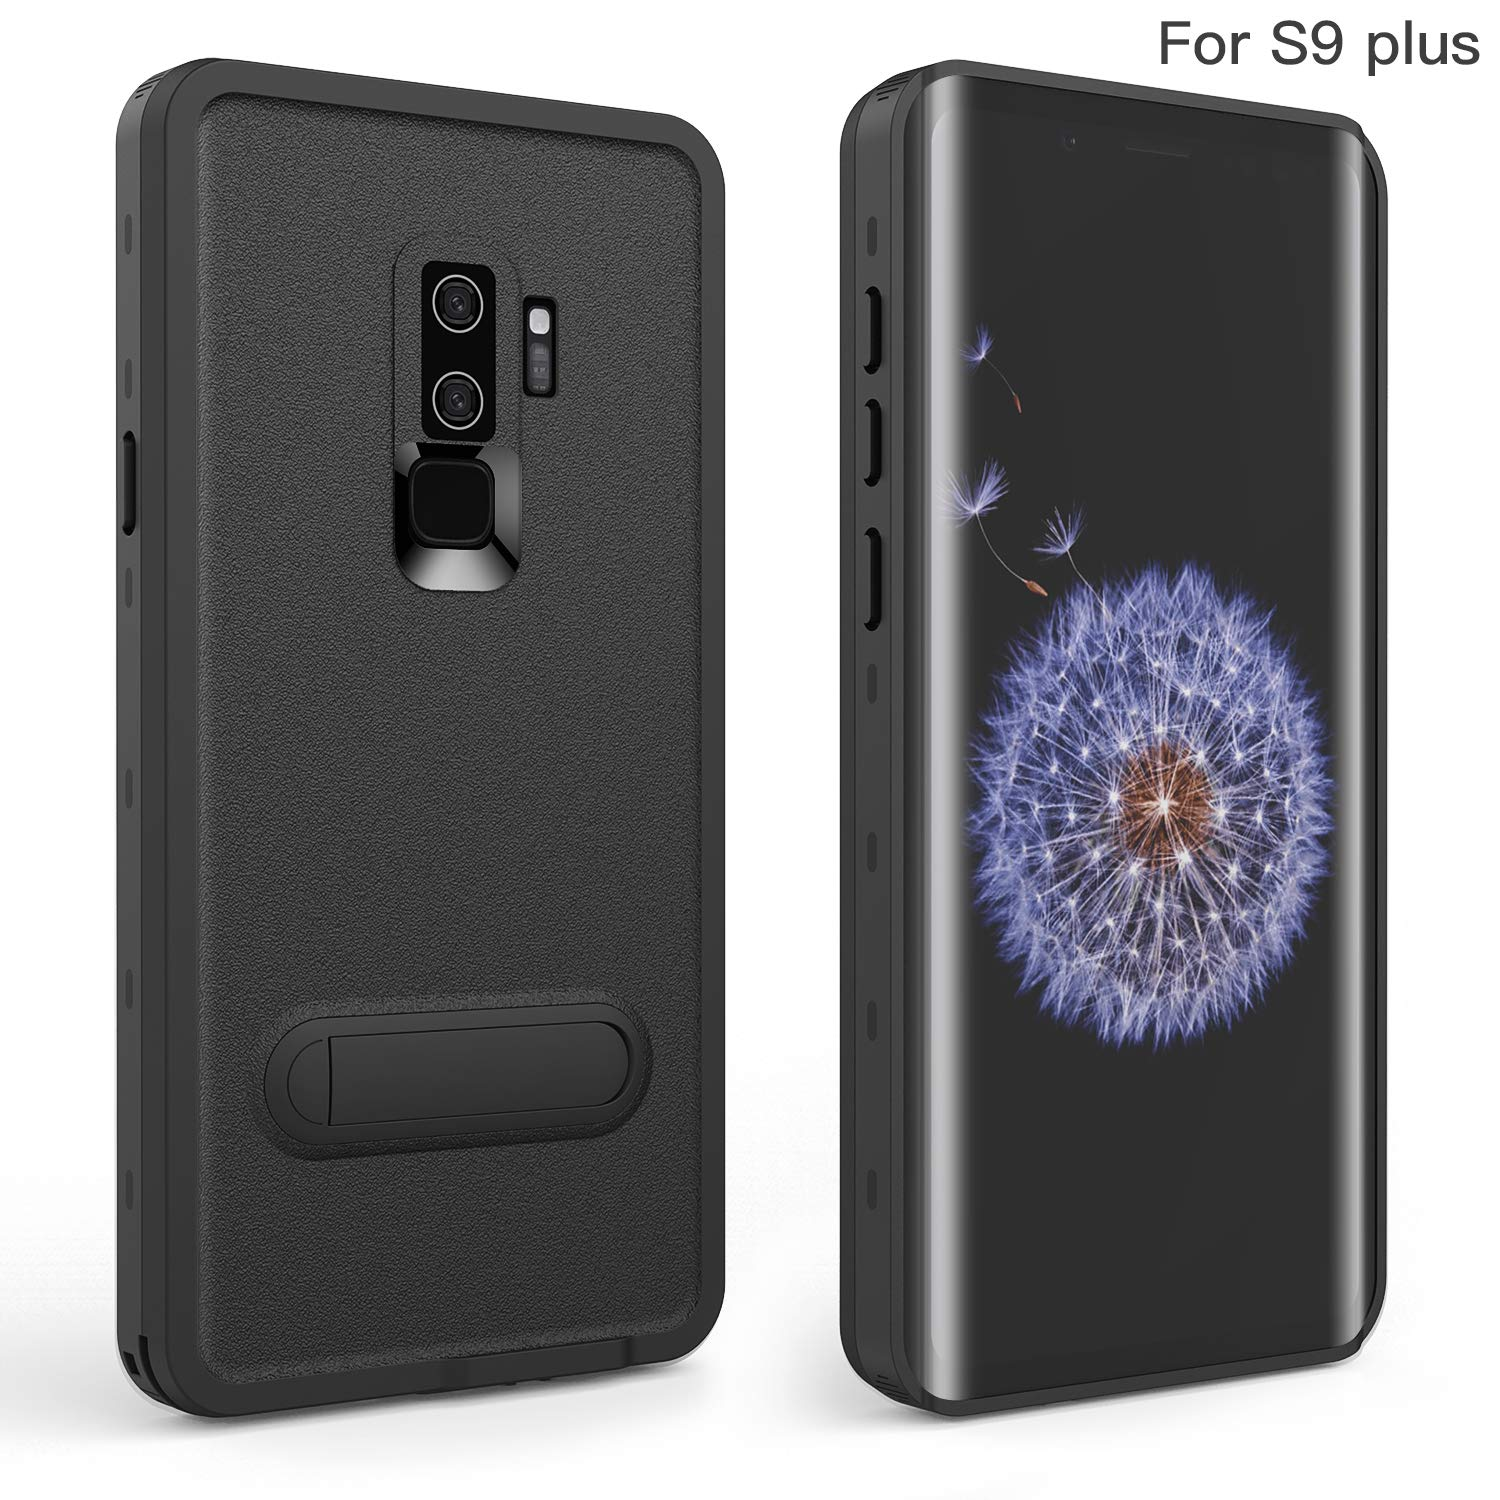 Samsung Galaxy S9 Plus Waterproof Case